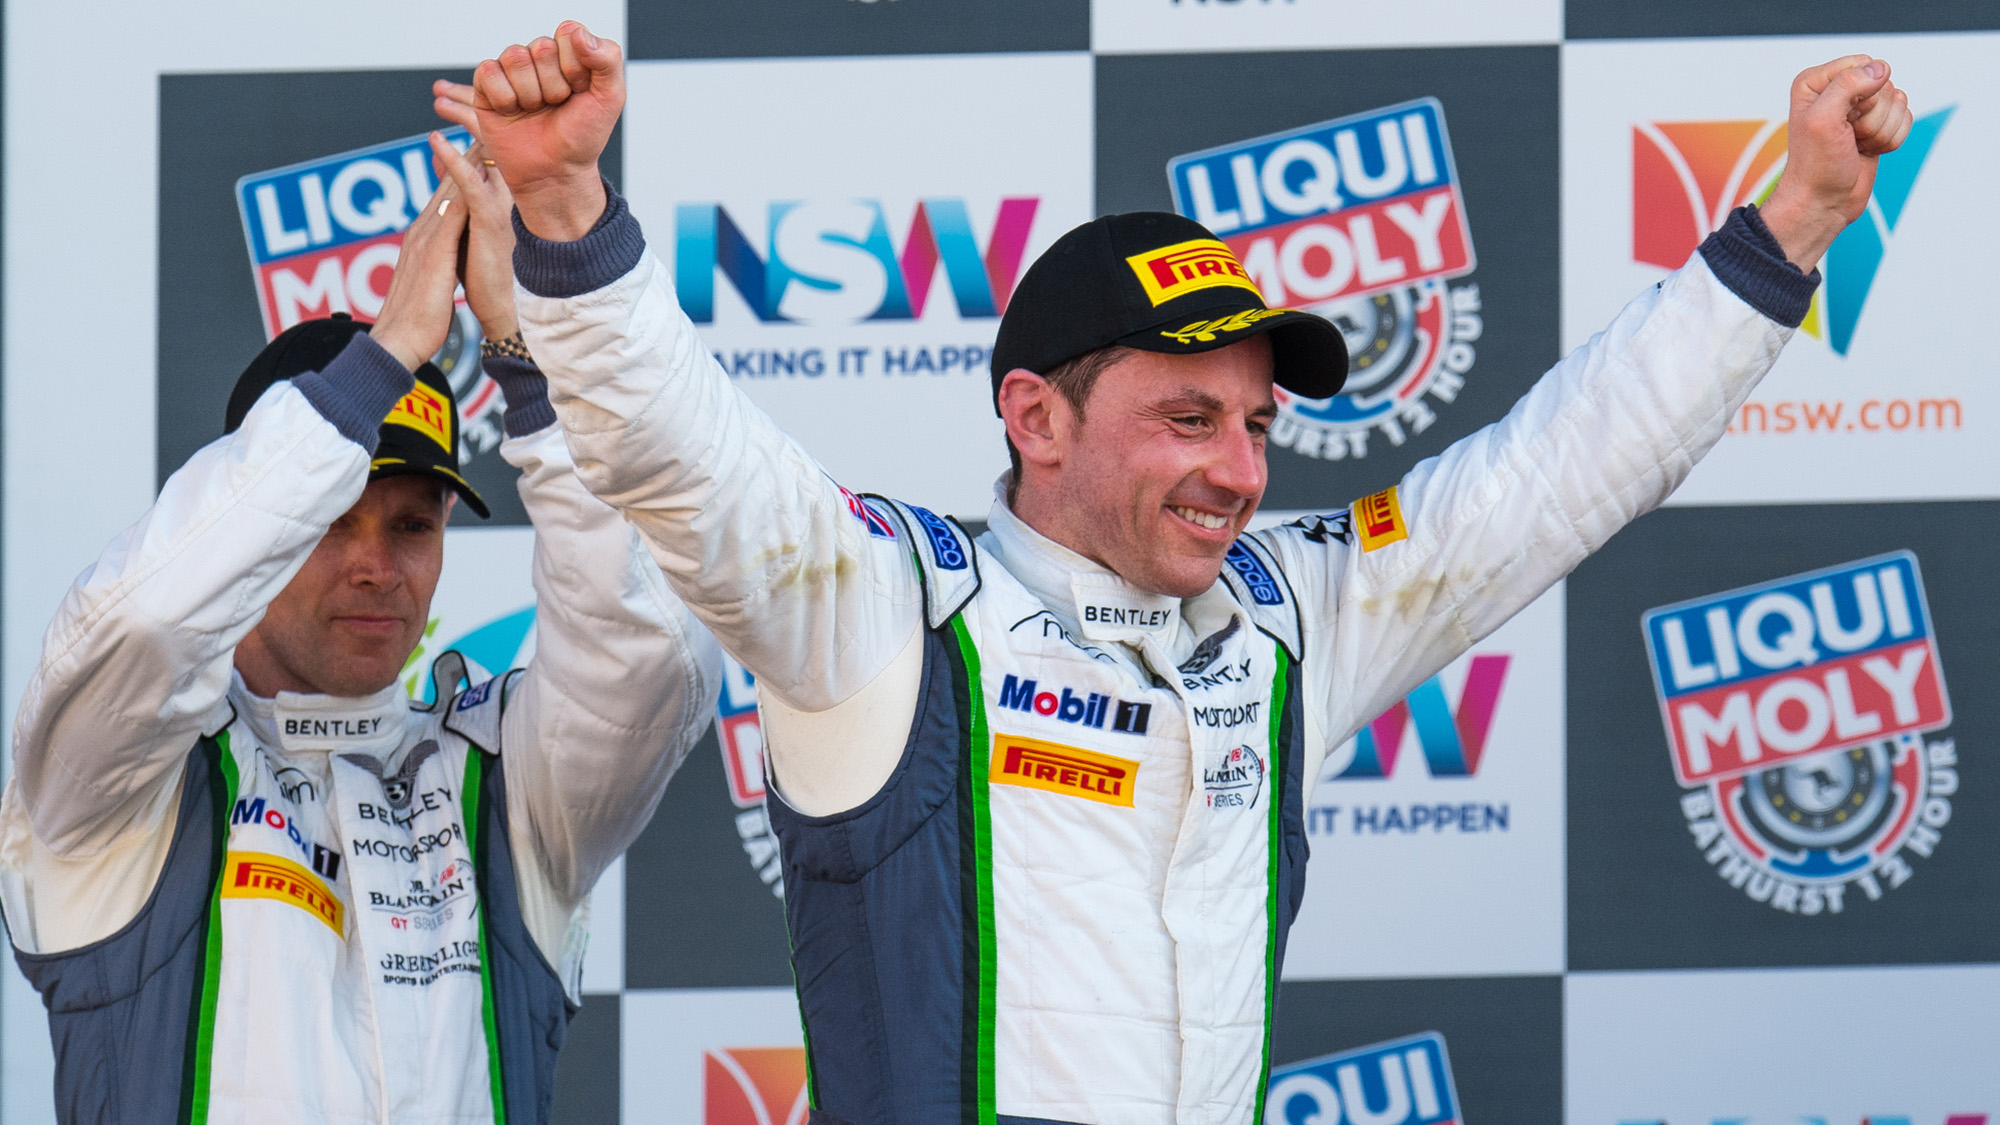 Guy Smith and Steven Kane on the posium at the 2017 Bathurst 12 Hours